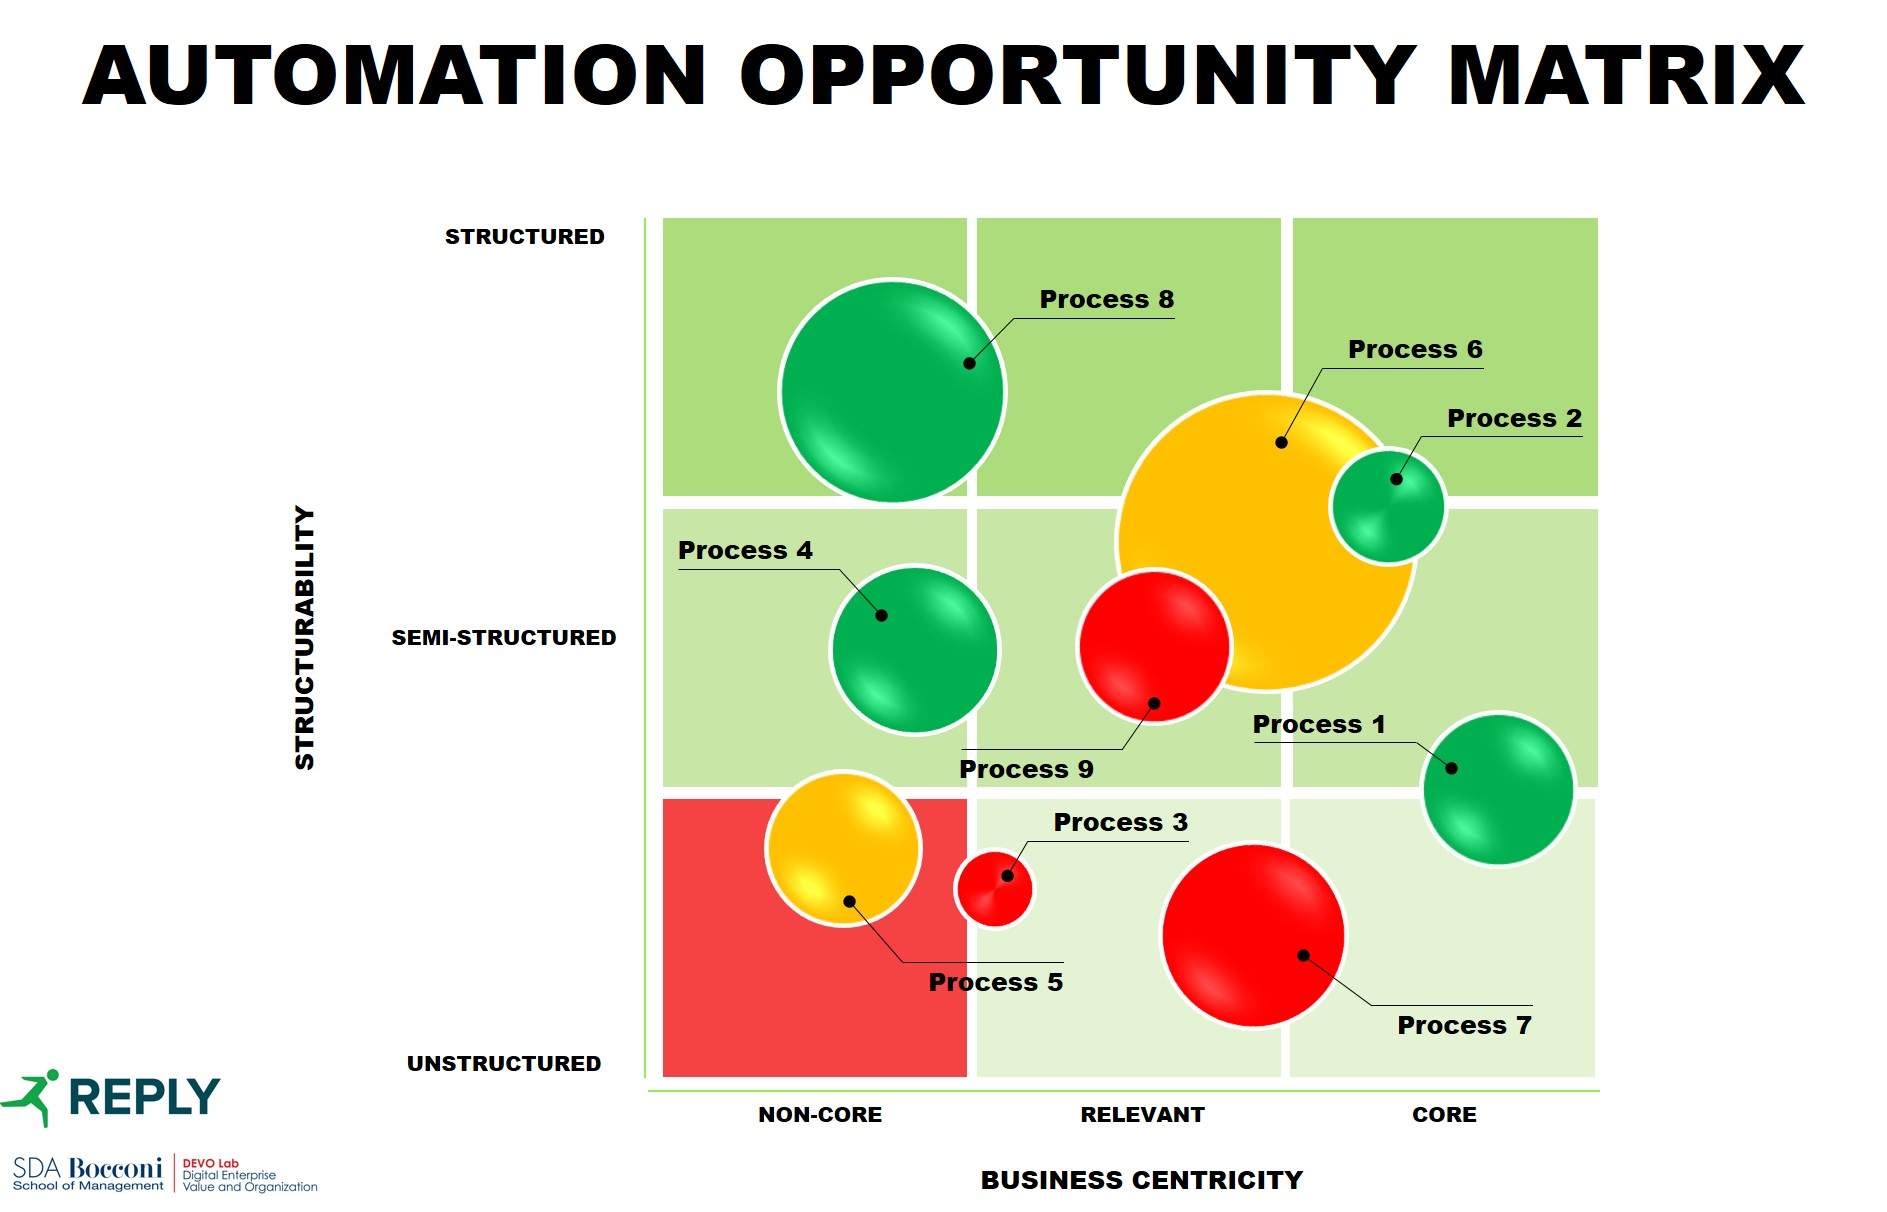 Automation Opportunity Matrix